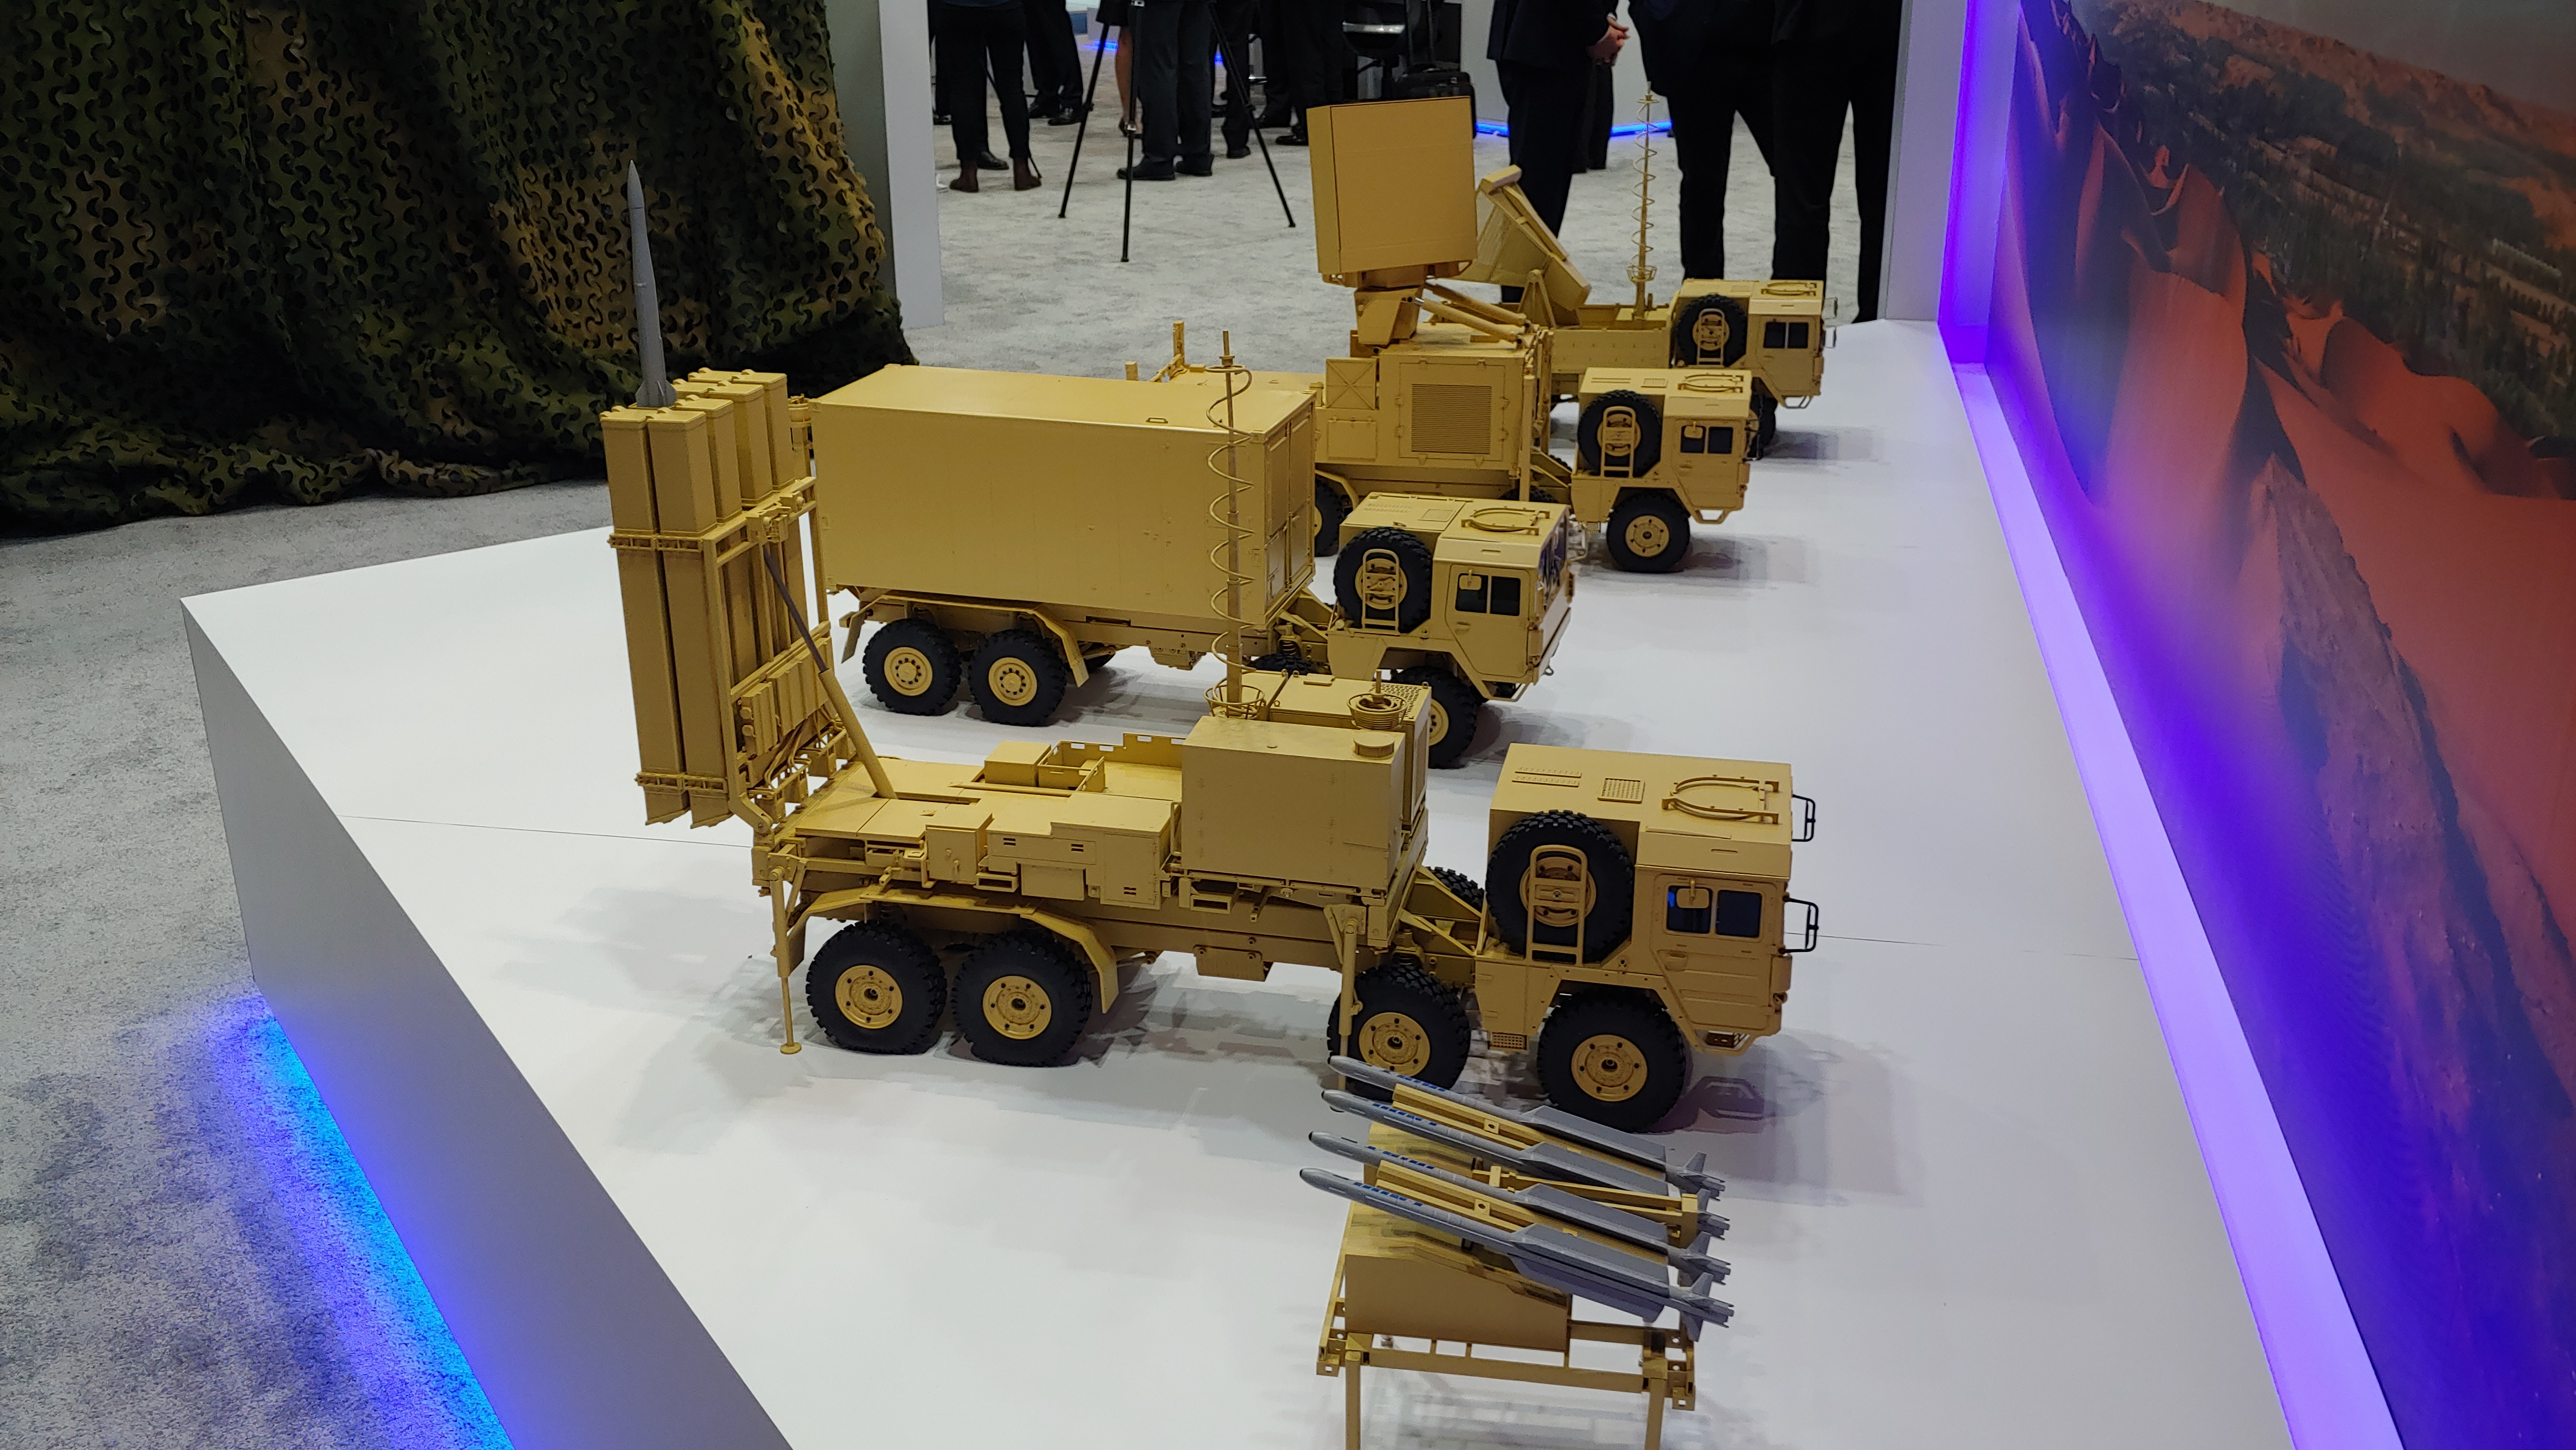 The Falcon air defense system, made by Lockheed Martin, Saab and Diehl Defence, on display at IDEX 2019 in Abu Dhabi. (Jeff Martin/Staff)